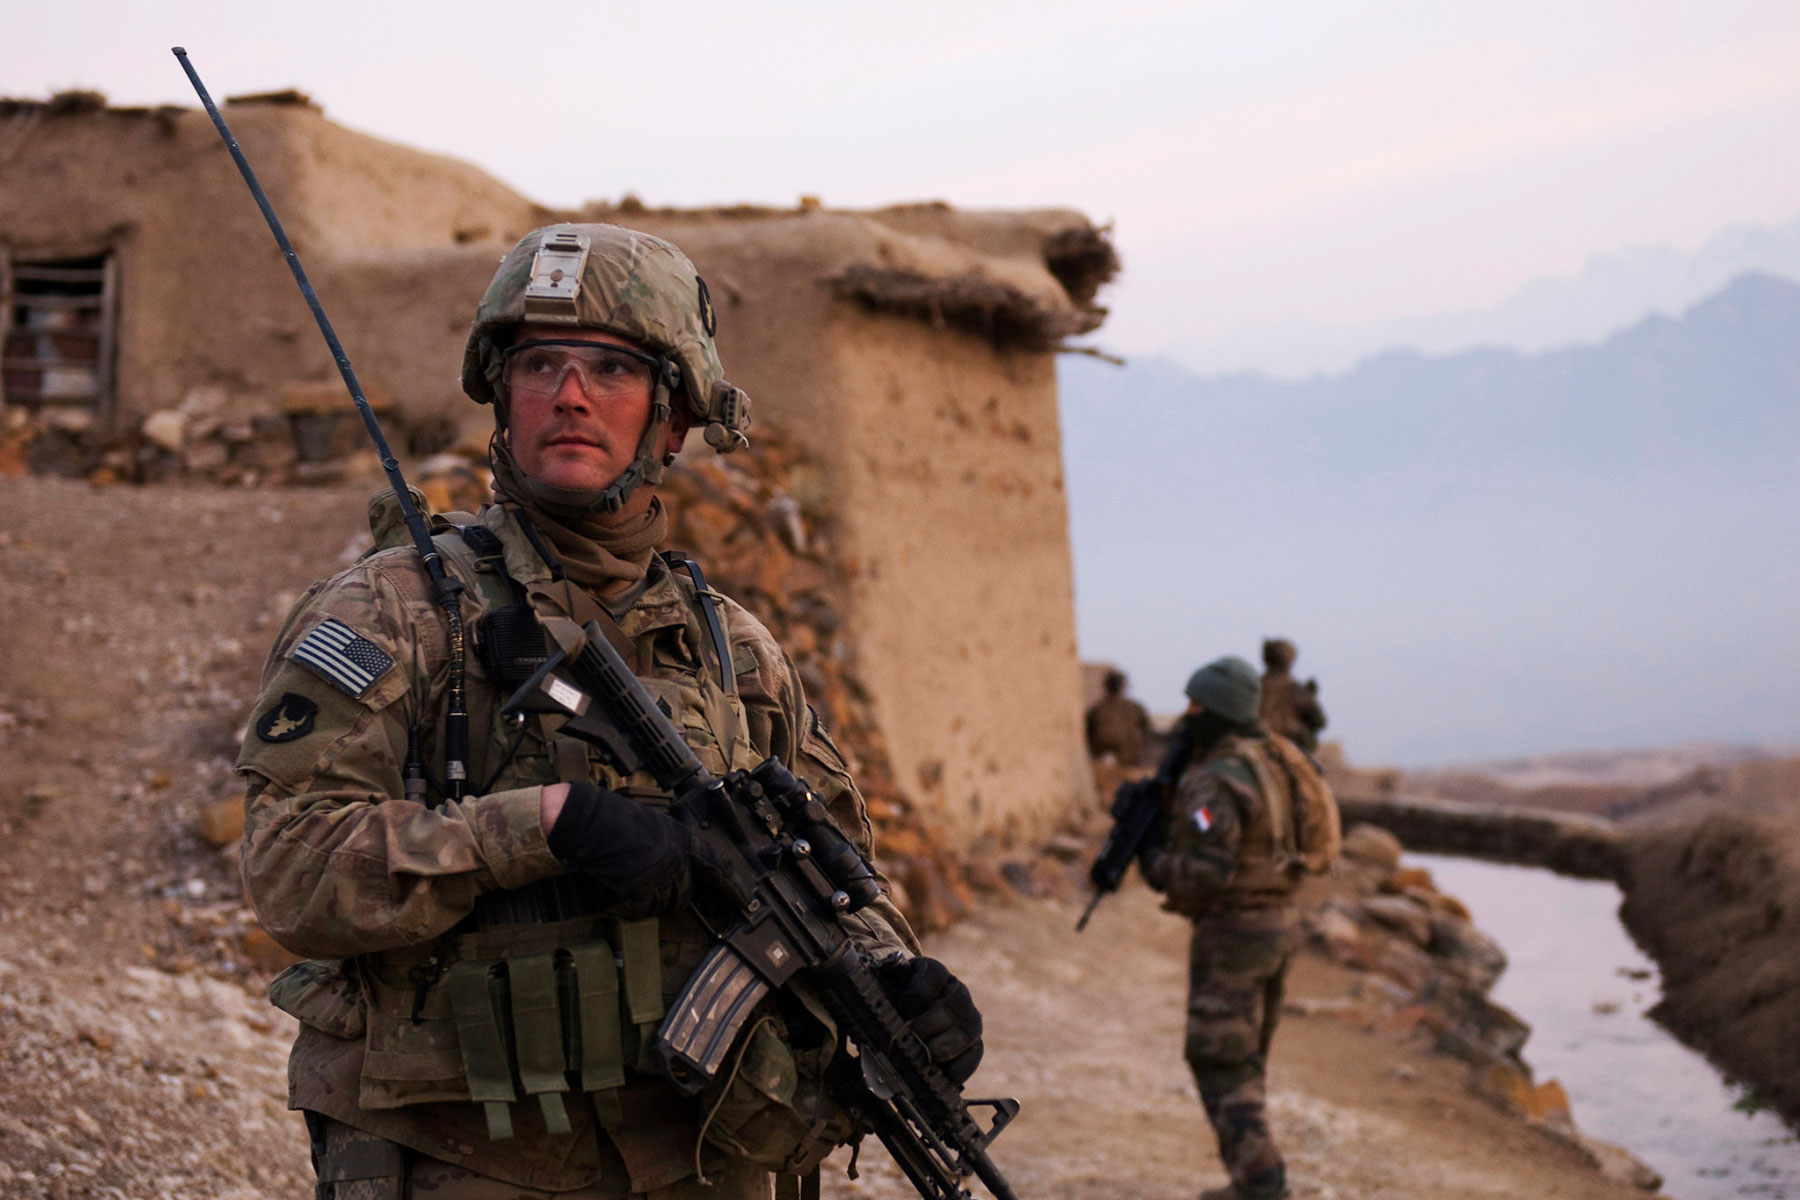 U.S. Army Sgt. Robert Streeter of Newton, Iowa, and a Soldier with Troop B, 1st Squadron, 113th Cavalry Regiment, Task Force Redhorse, scans a nearby hilltop during a search of the Qual-e Jala village. (U.S. Army/Ashlee Lolkus)